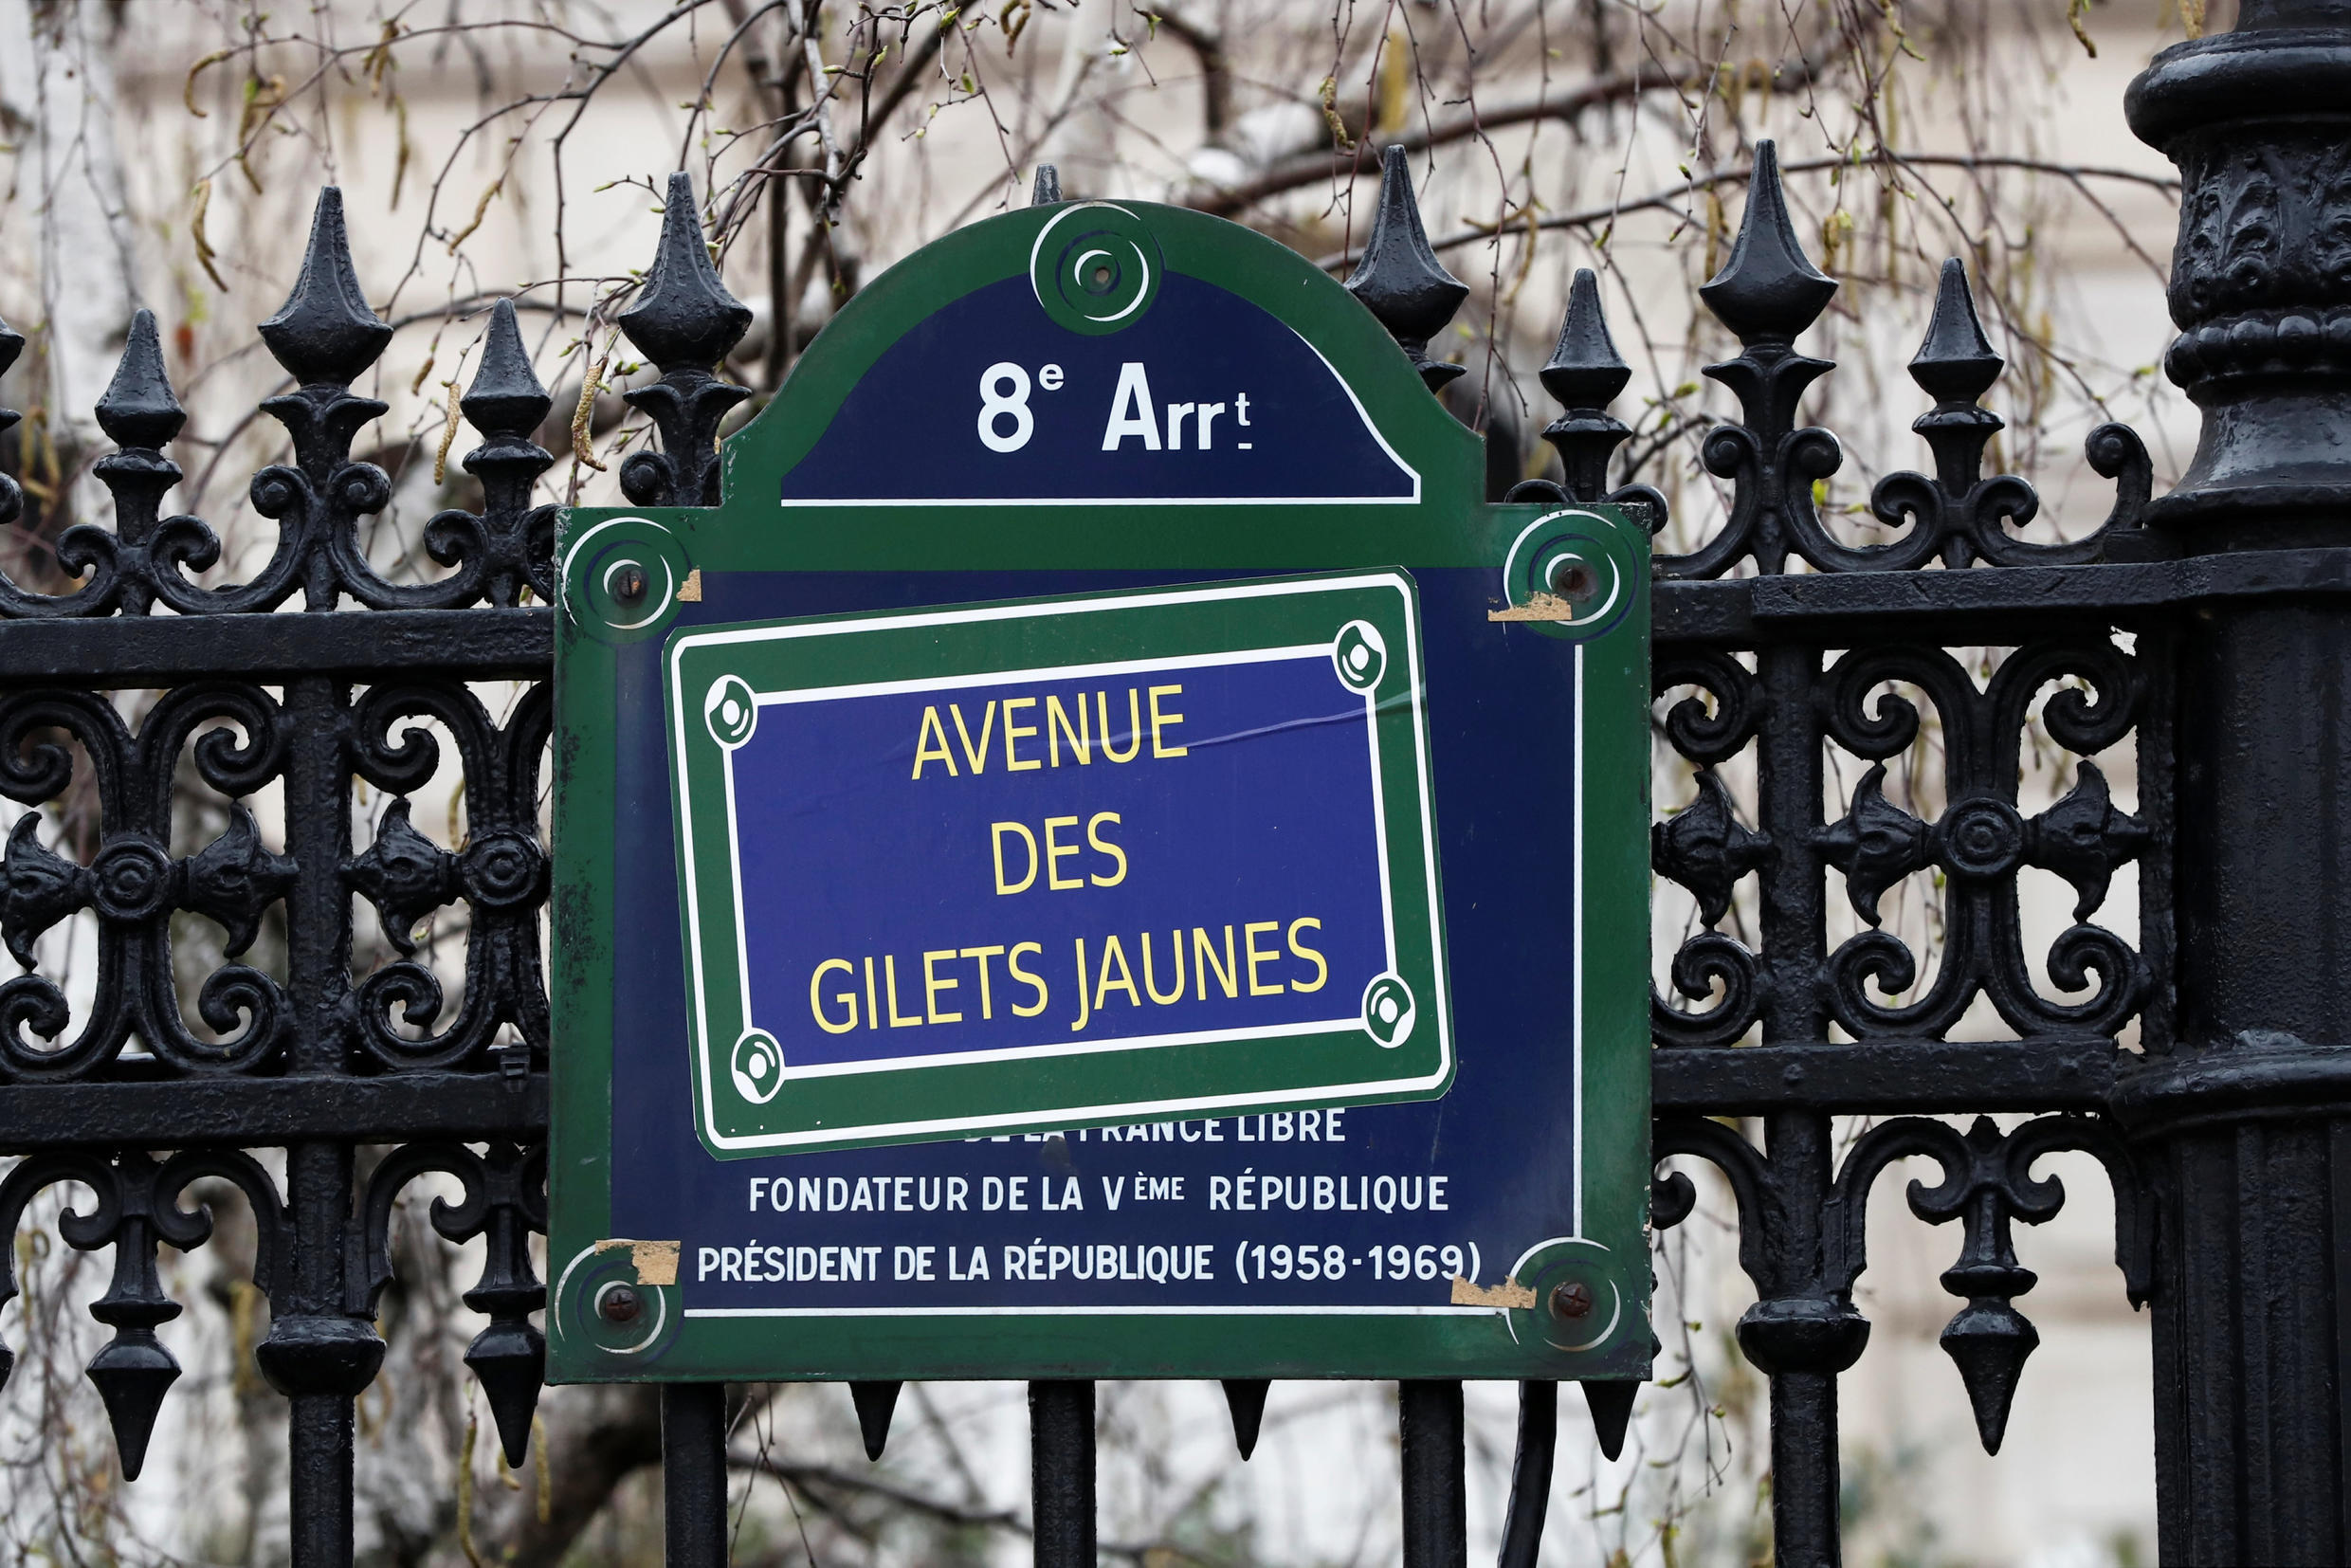 Around 5,000 demonstrators took to the streets in Paris during the 19th round of gilet jaunes protests.